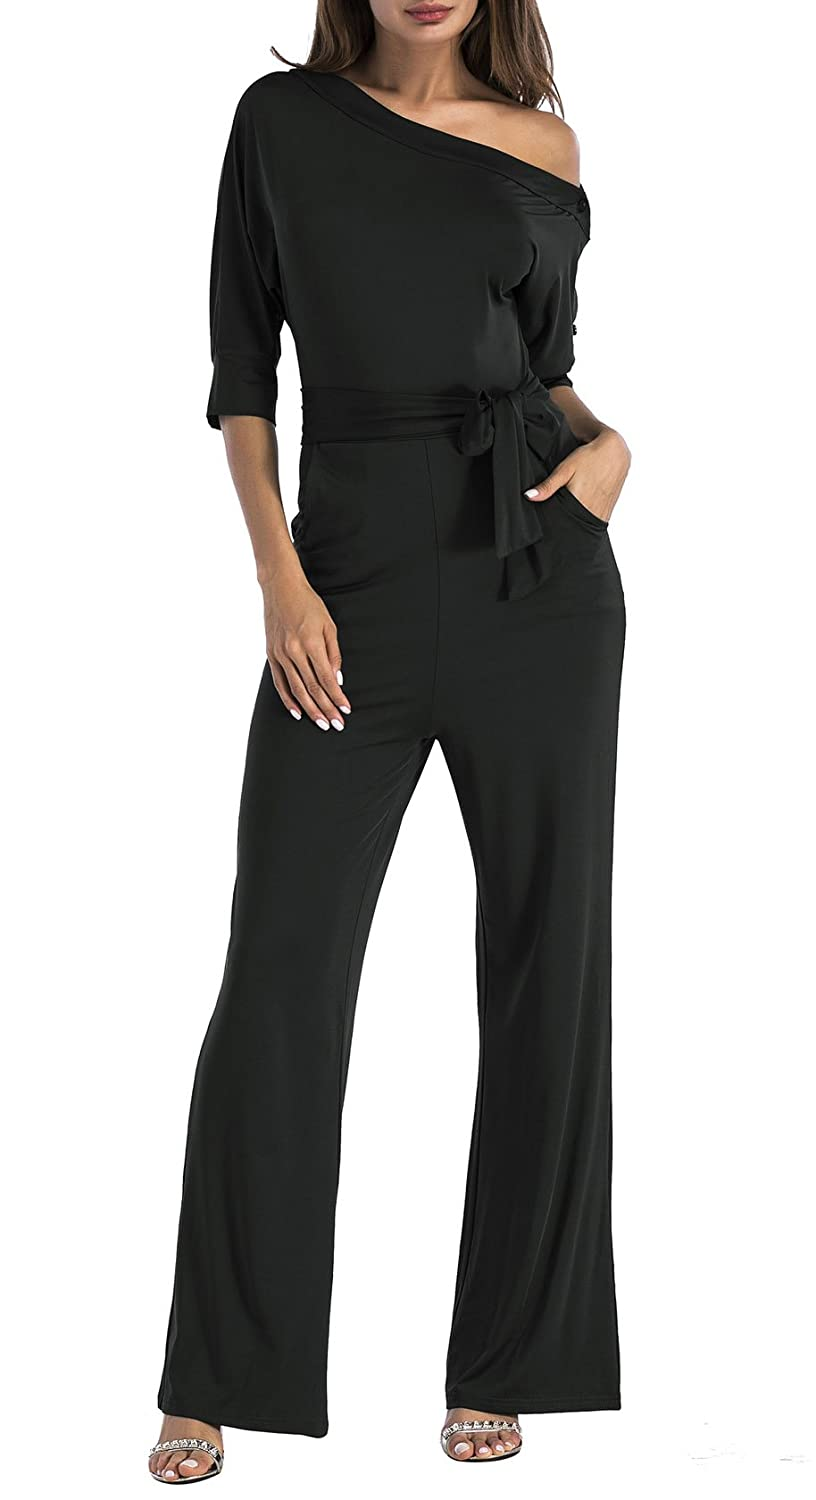 3f83a33dcac9 Top 10 wholesale One Shoulder Long Sleeve Jumpsuit - Chinabrands.com